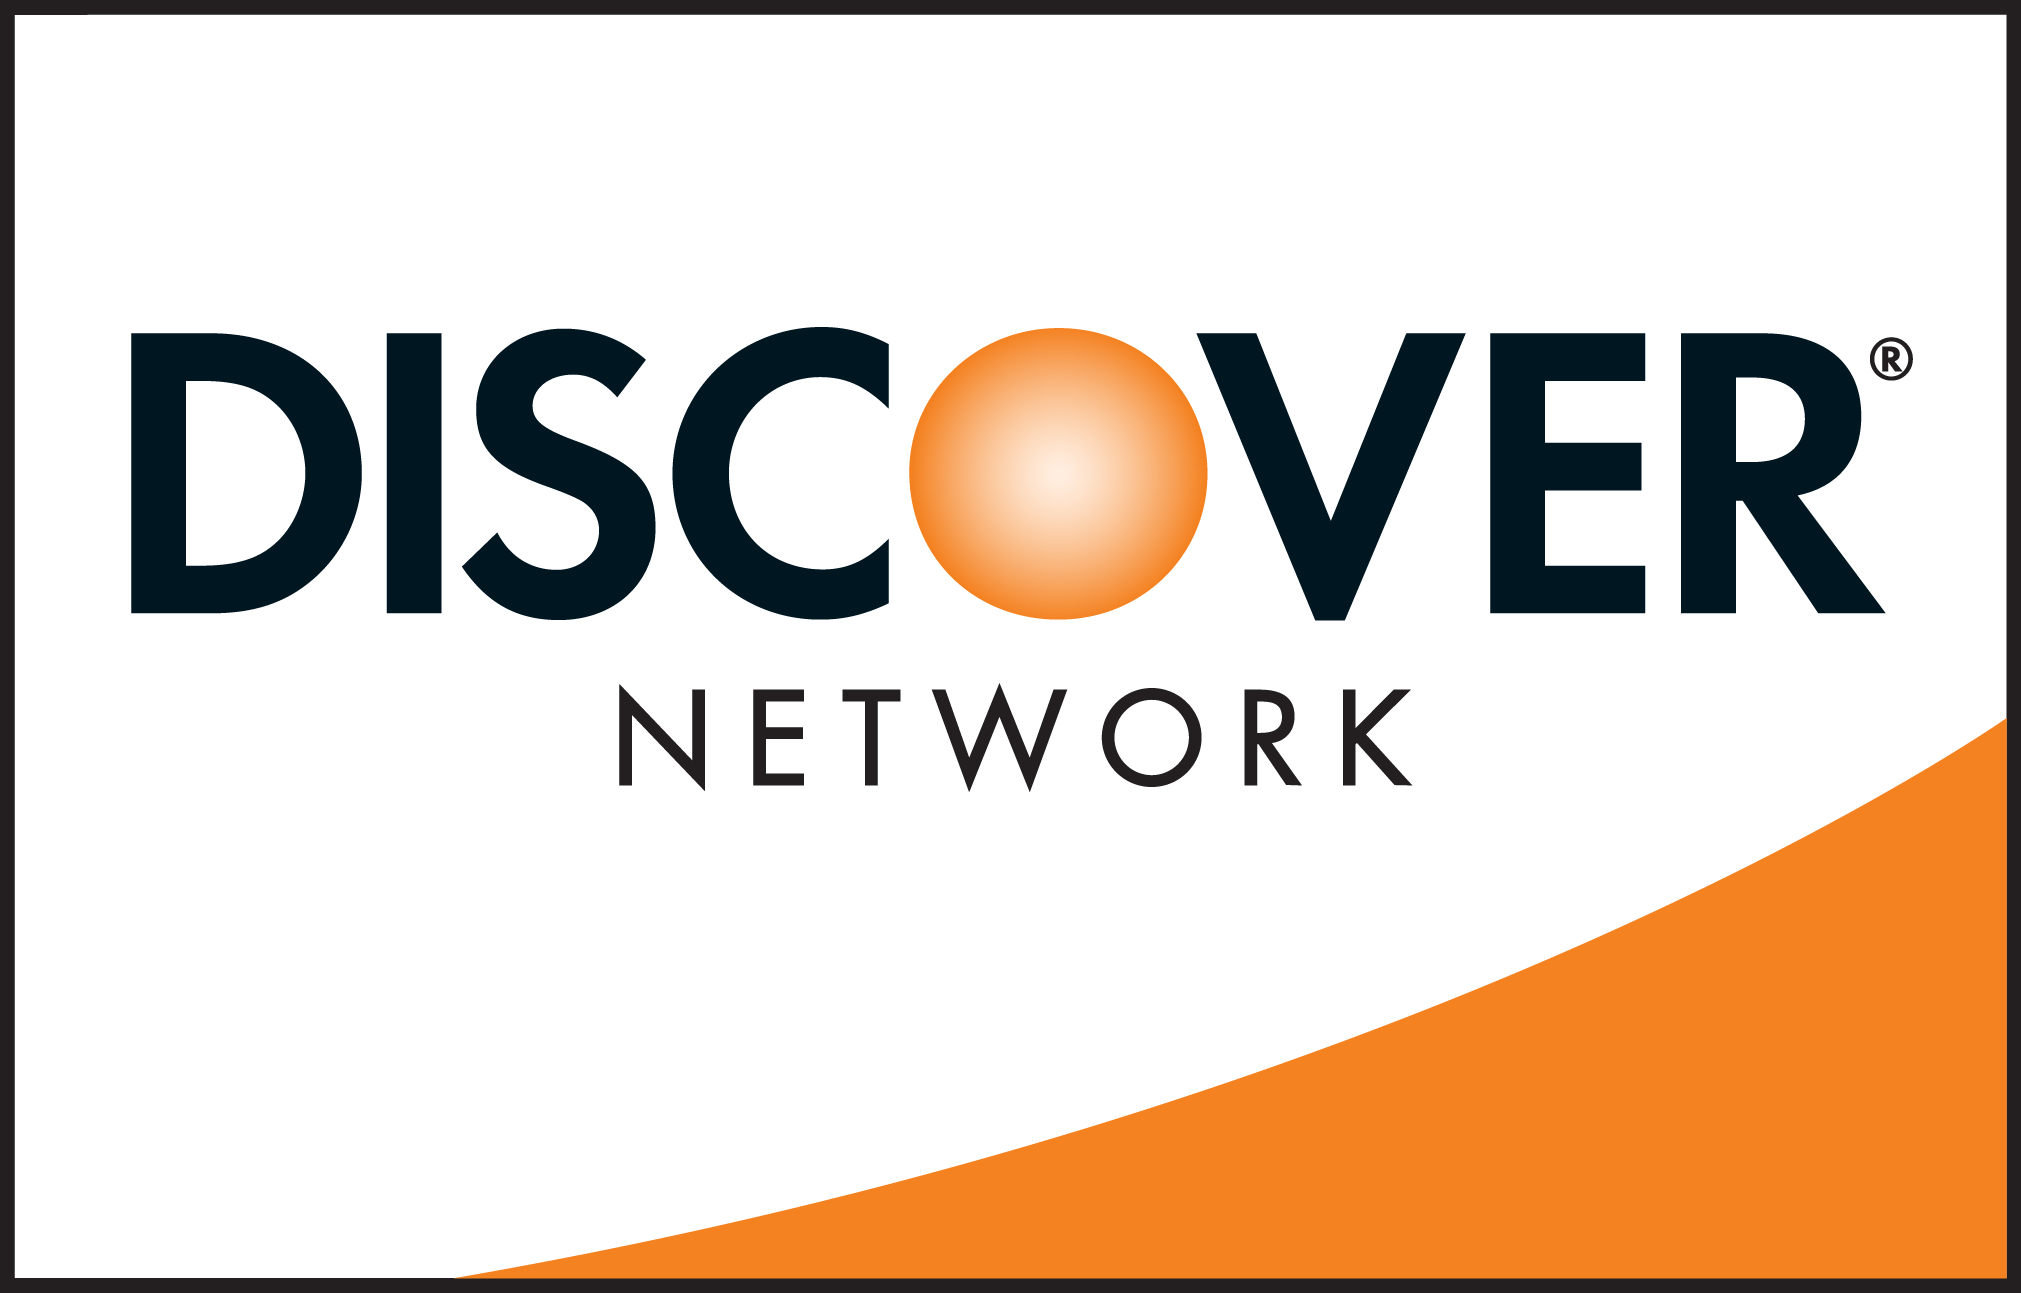 Discover network card logo